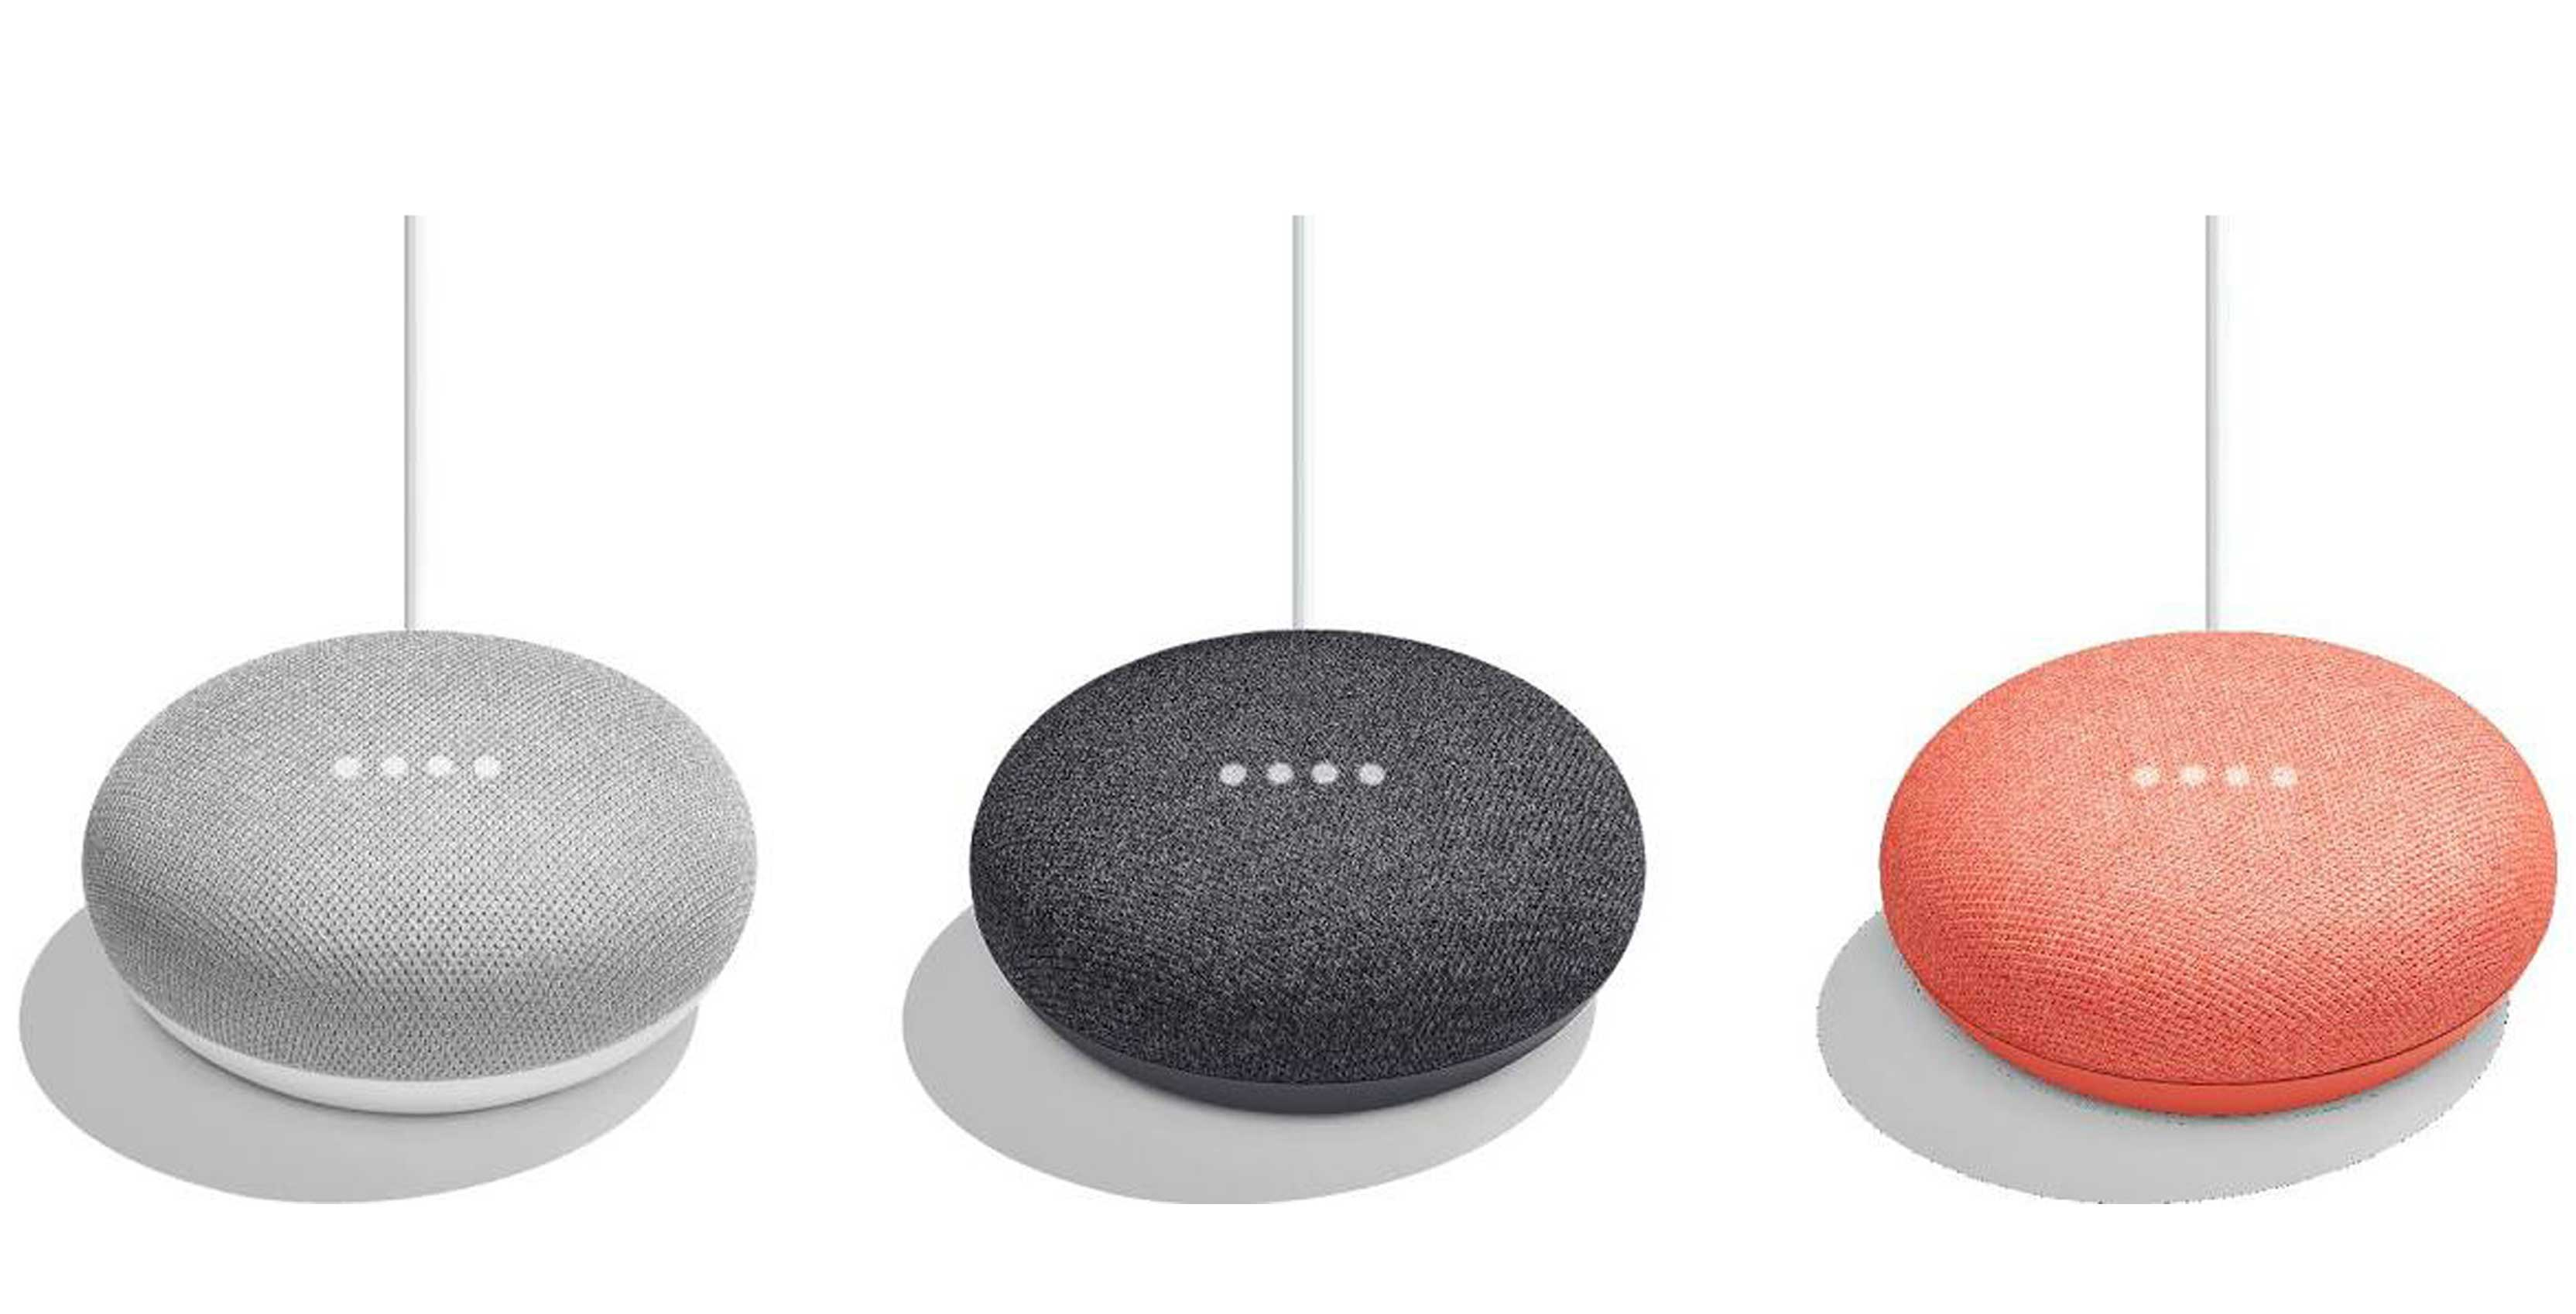 The New Google Home Mini: Smaller Package, Greater Value